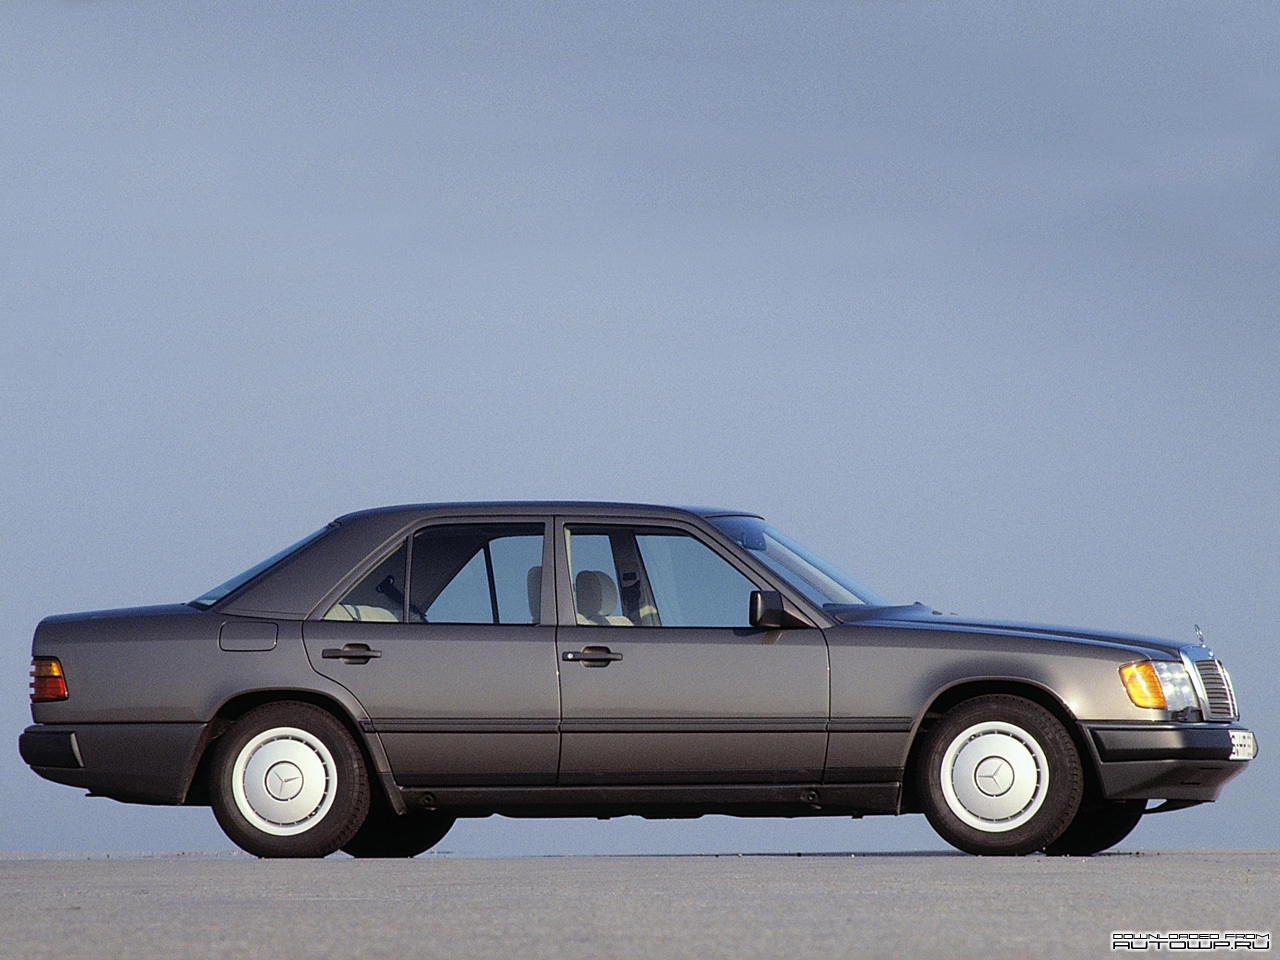 Mercedes Benz E Class W124 Photos Photogallery With 25